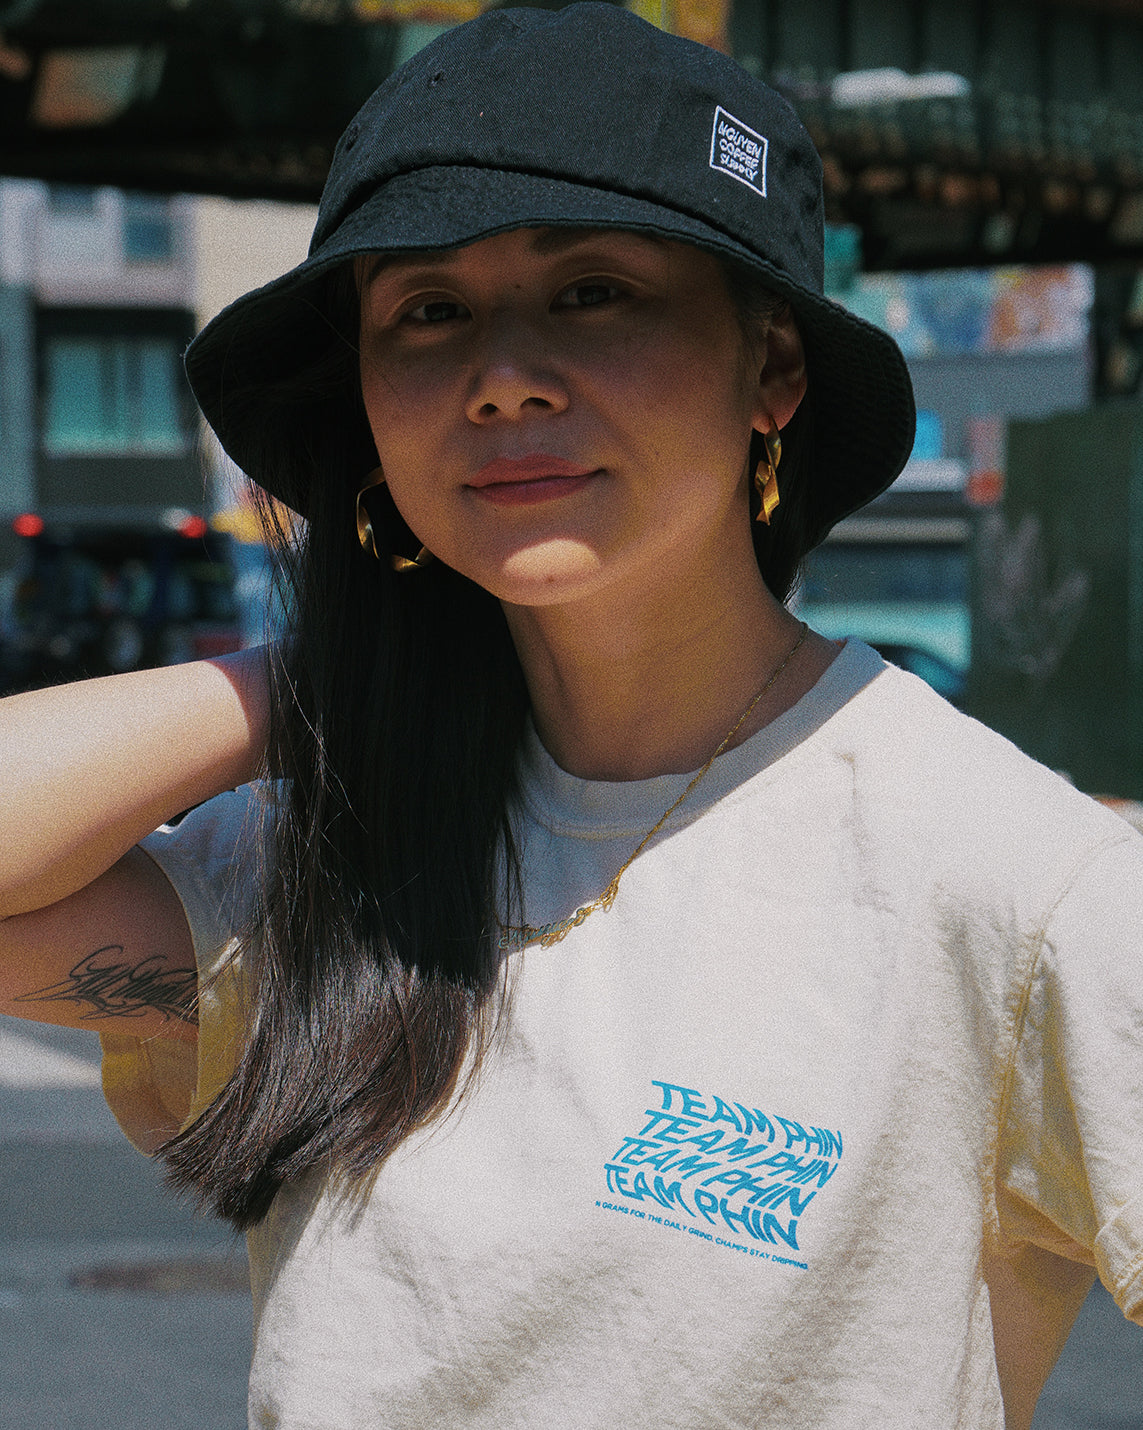 90s Bucket Hat - Nguyen Coffee Supply - Team Phin - streetwear -brooklyn